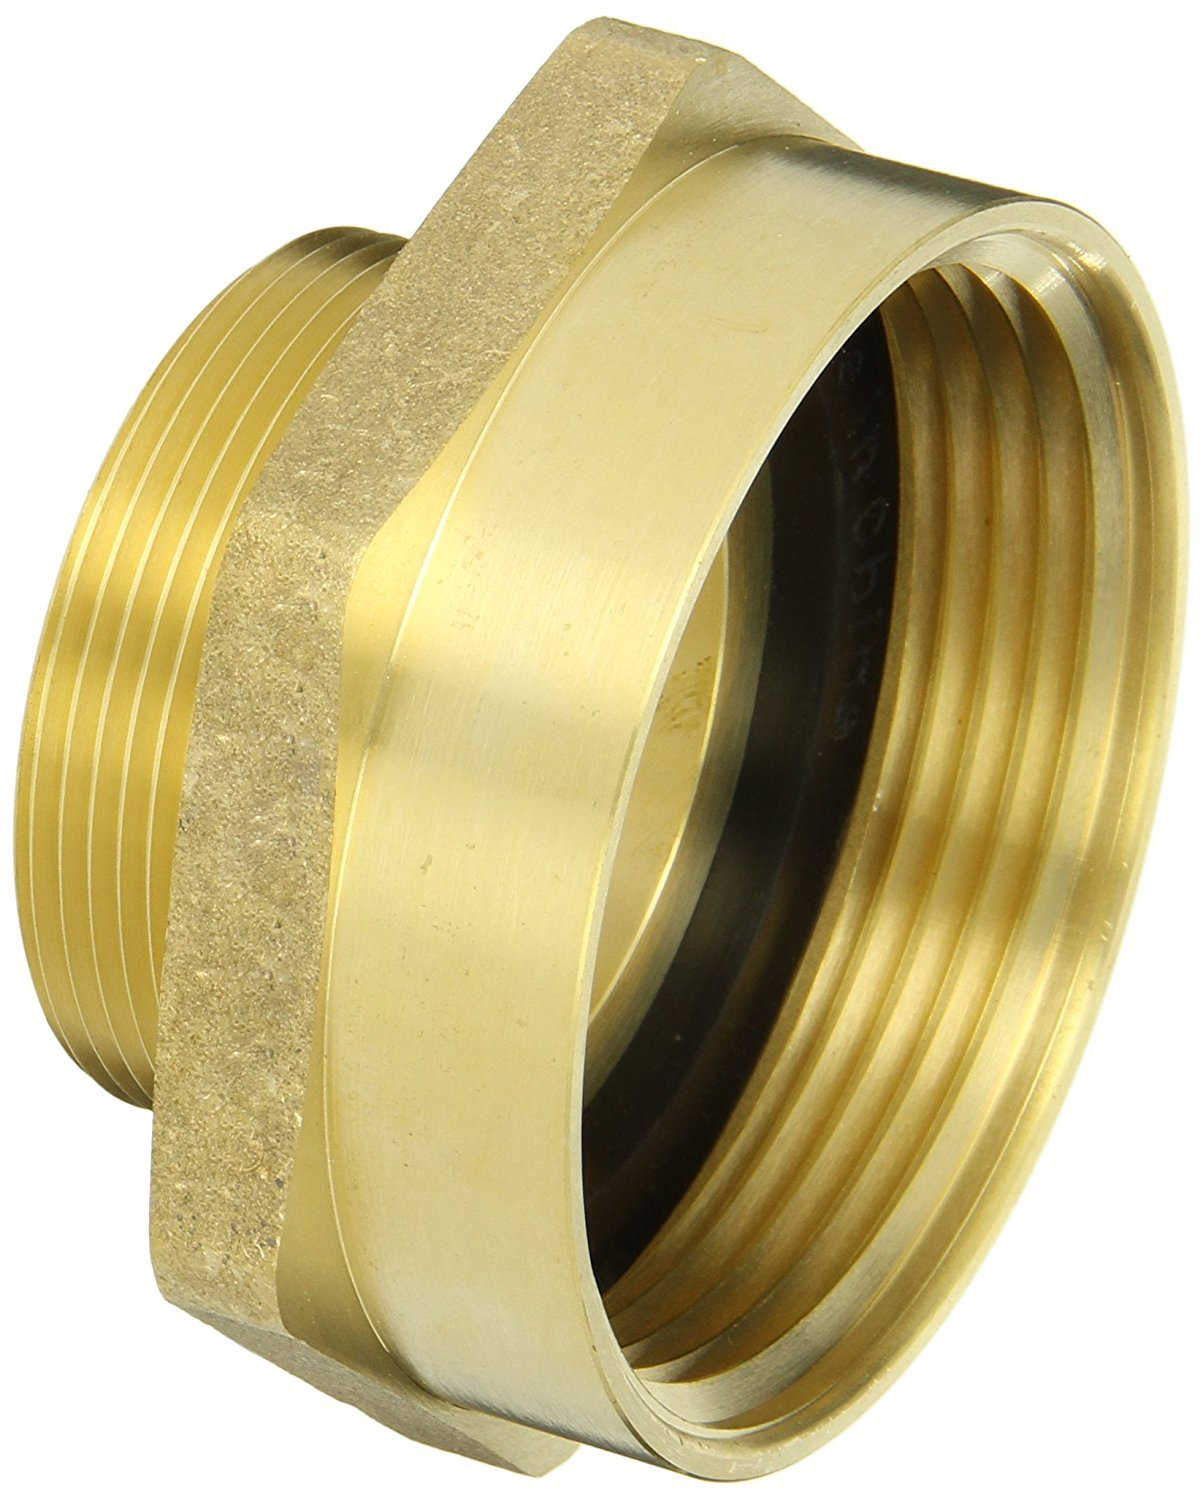 Campbell Fittings FM25F20T Female to Male Nipple, 2.5'' ID, Brass, 2-1/2'' NST x 2'' NPT